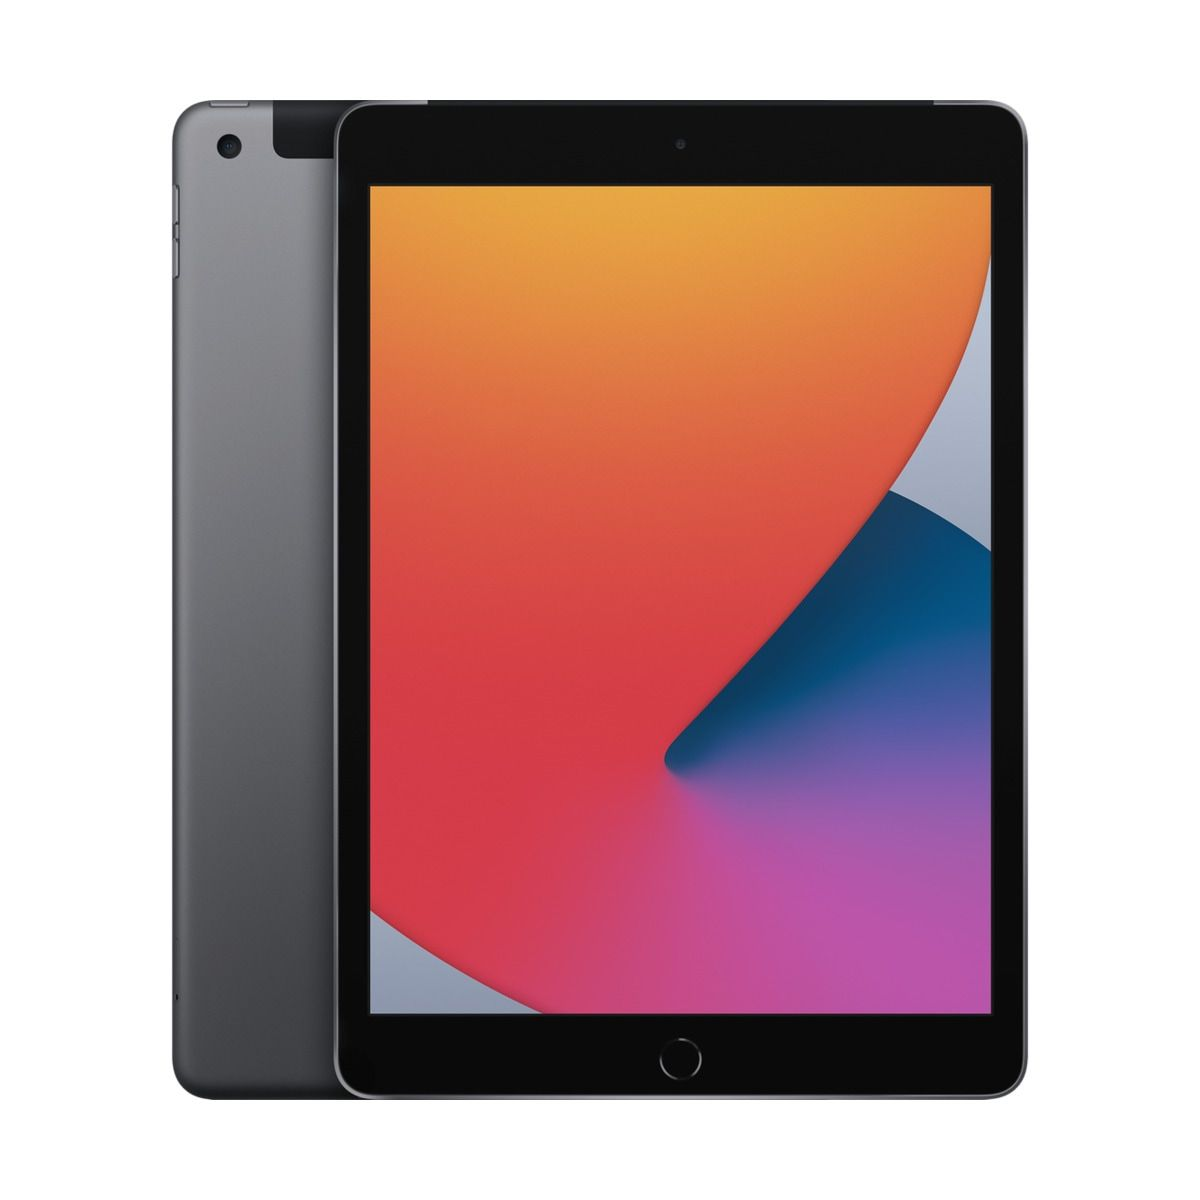 iPad Wi-Fi+Cell 128GB - Space Grey